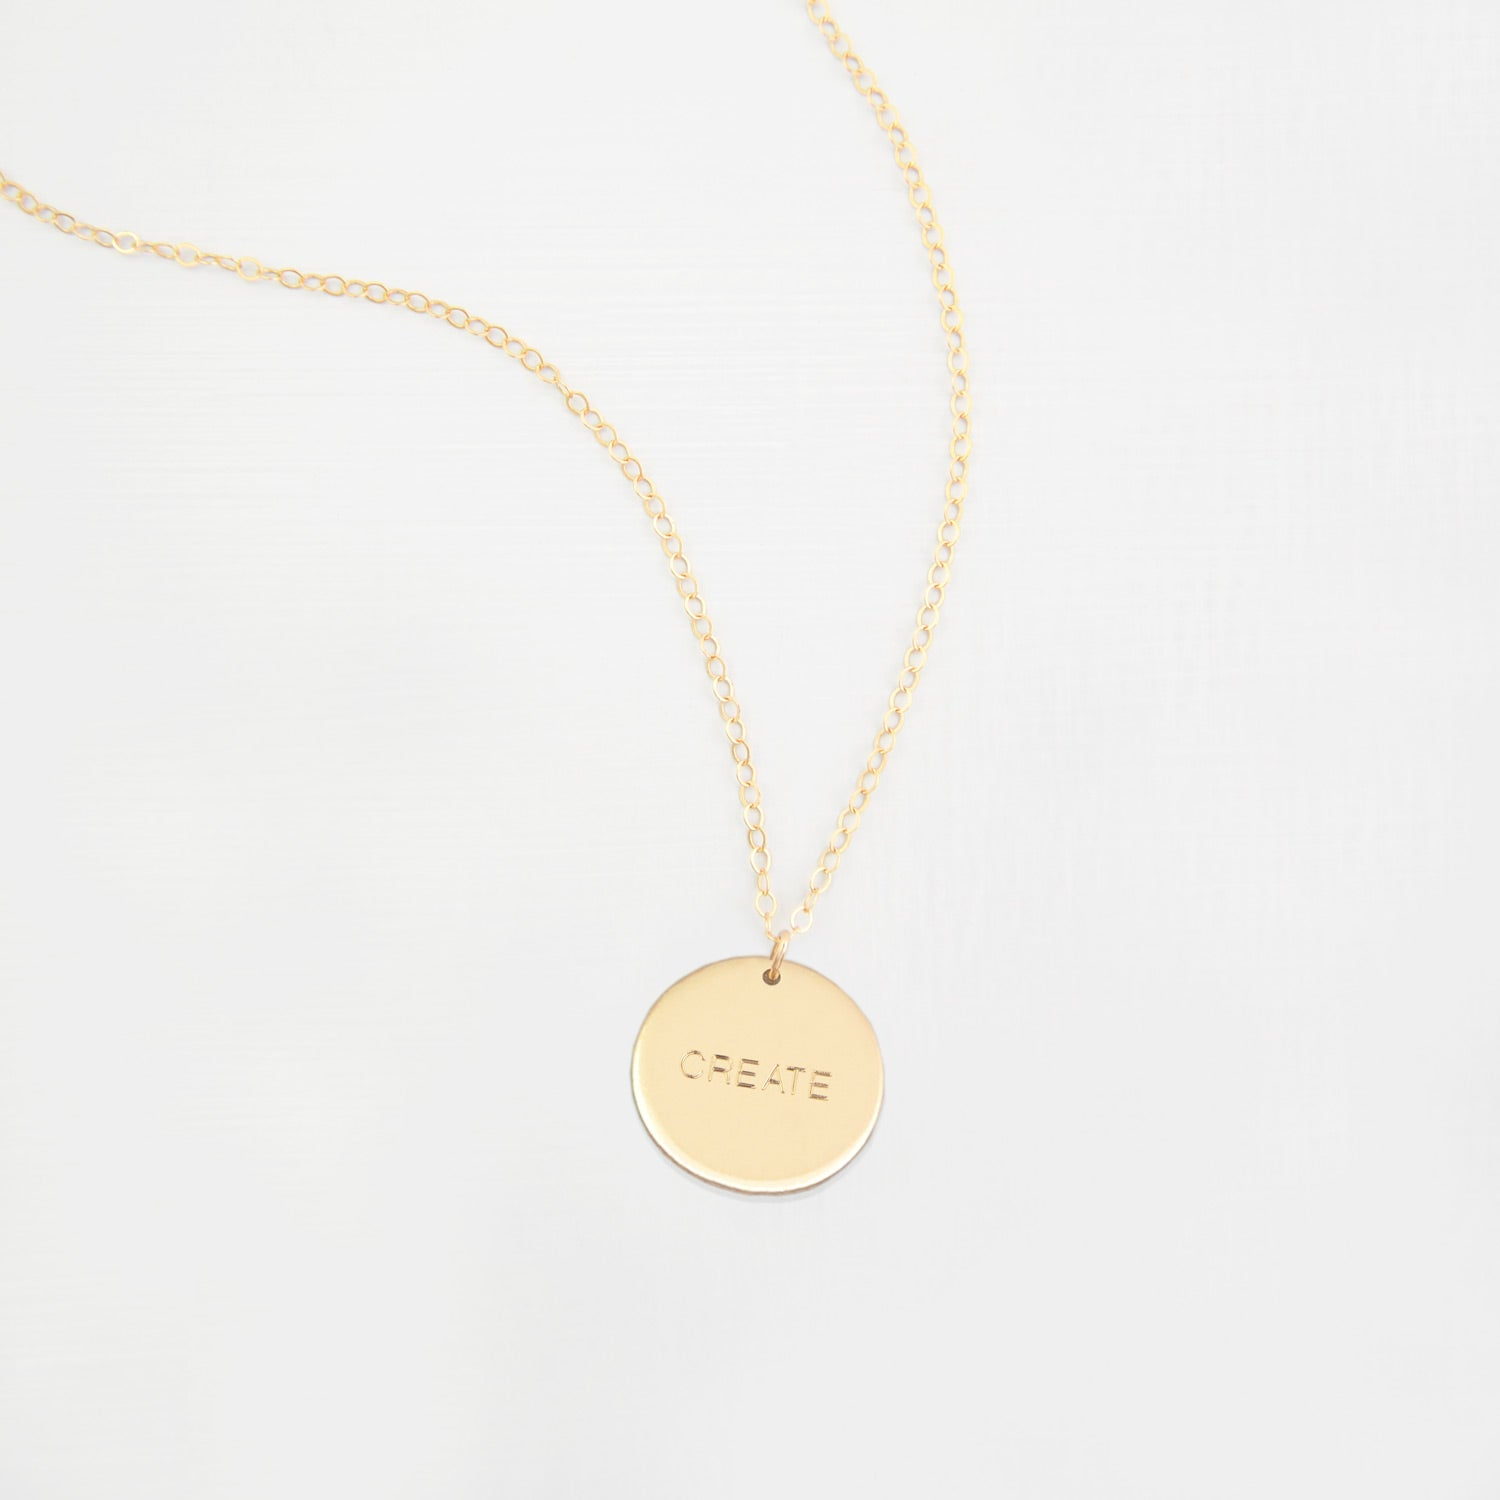 Personalised large disk 'inspiration' necklace